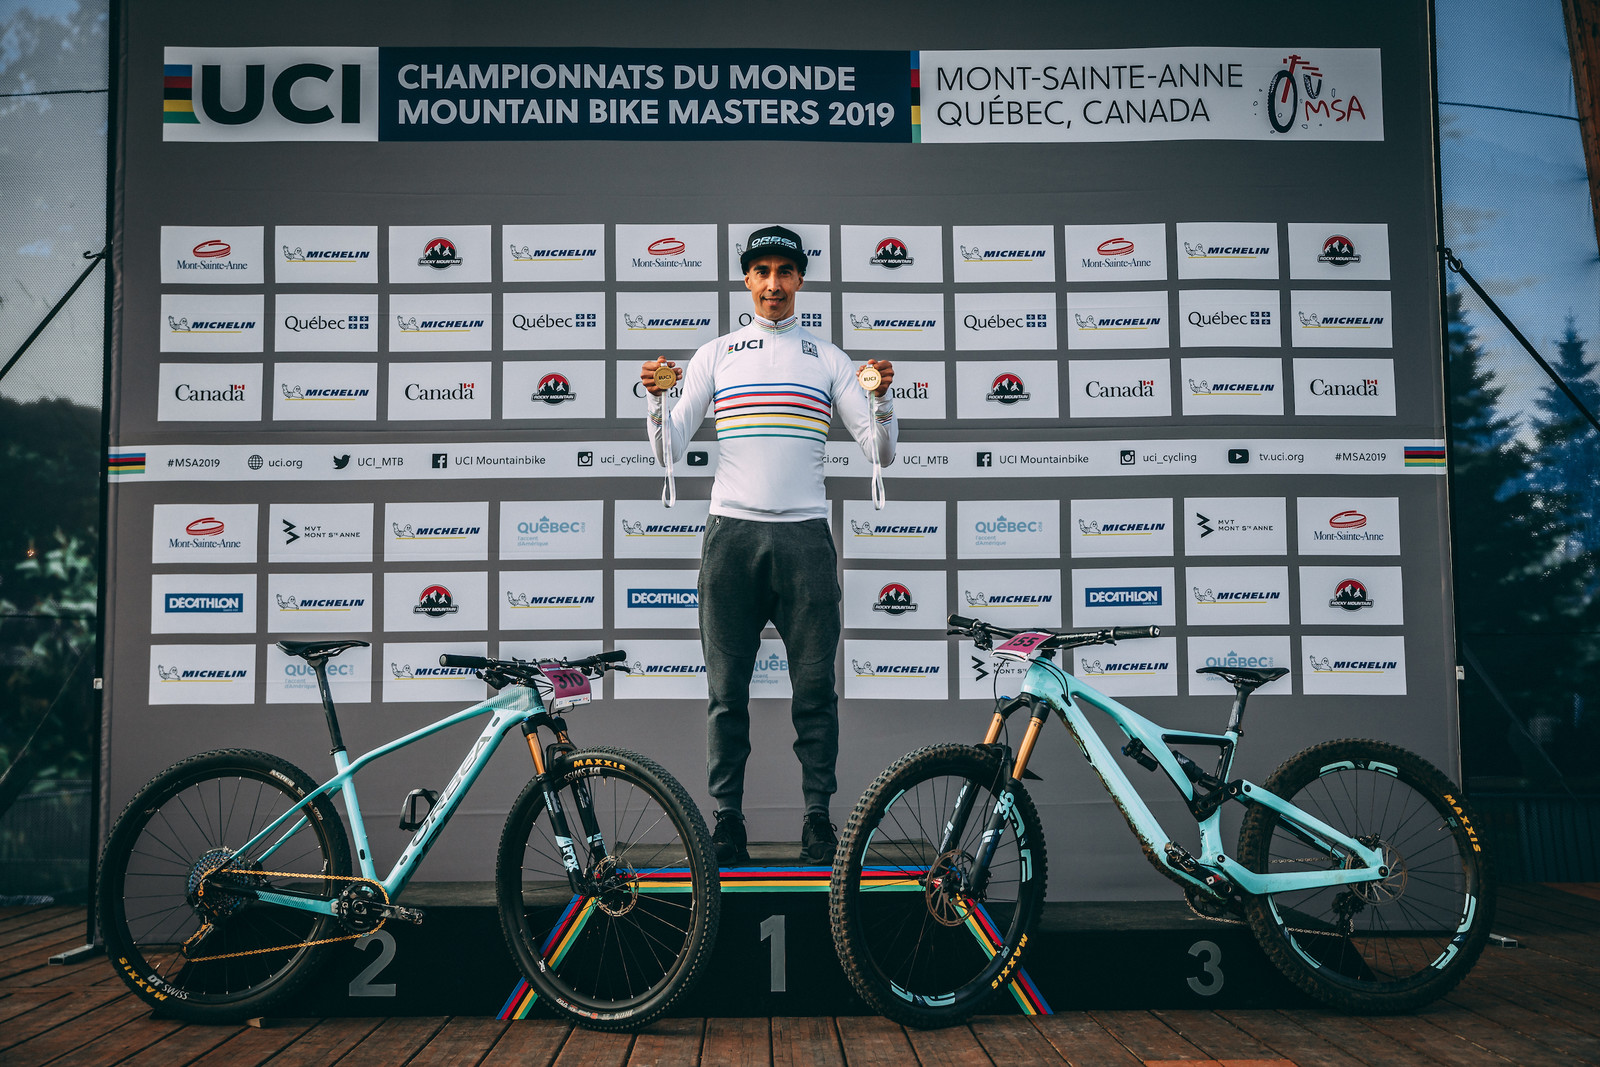 Orbea Factory Rider Tomi Misser Wins the World Title in Both Downhill and Cross Country